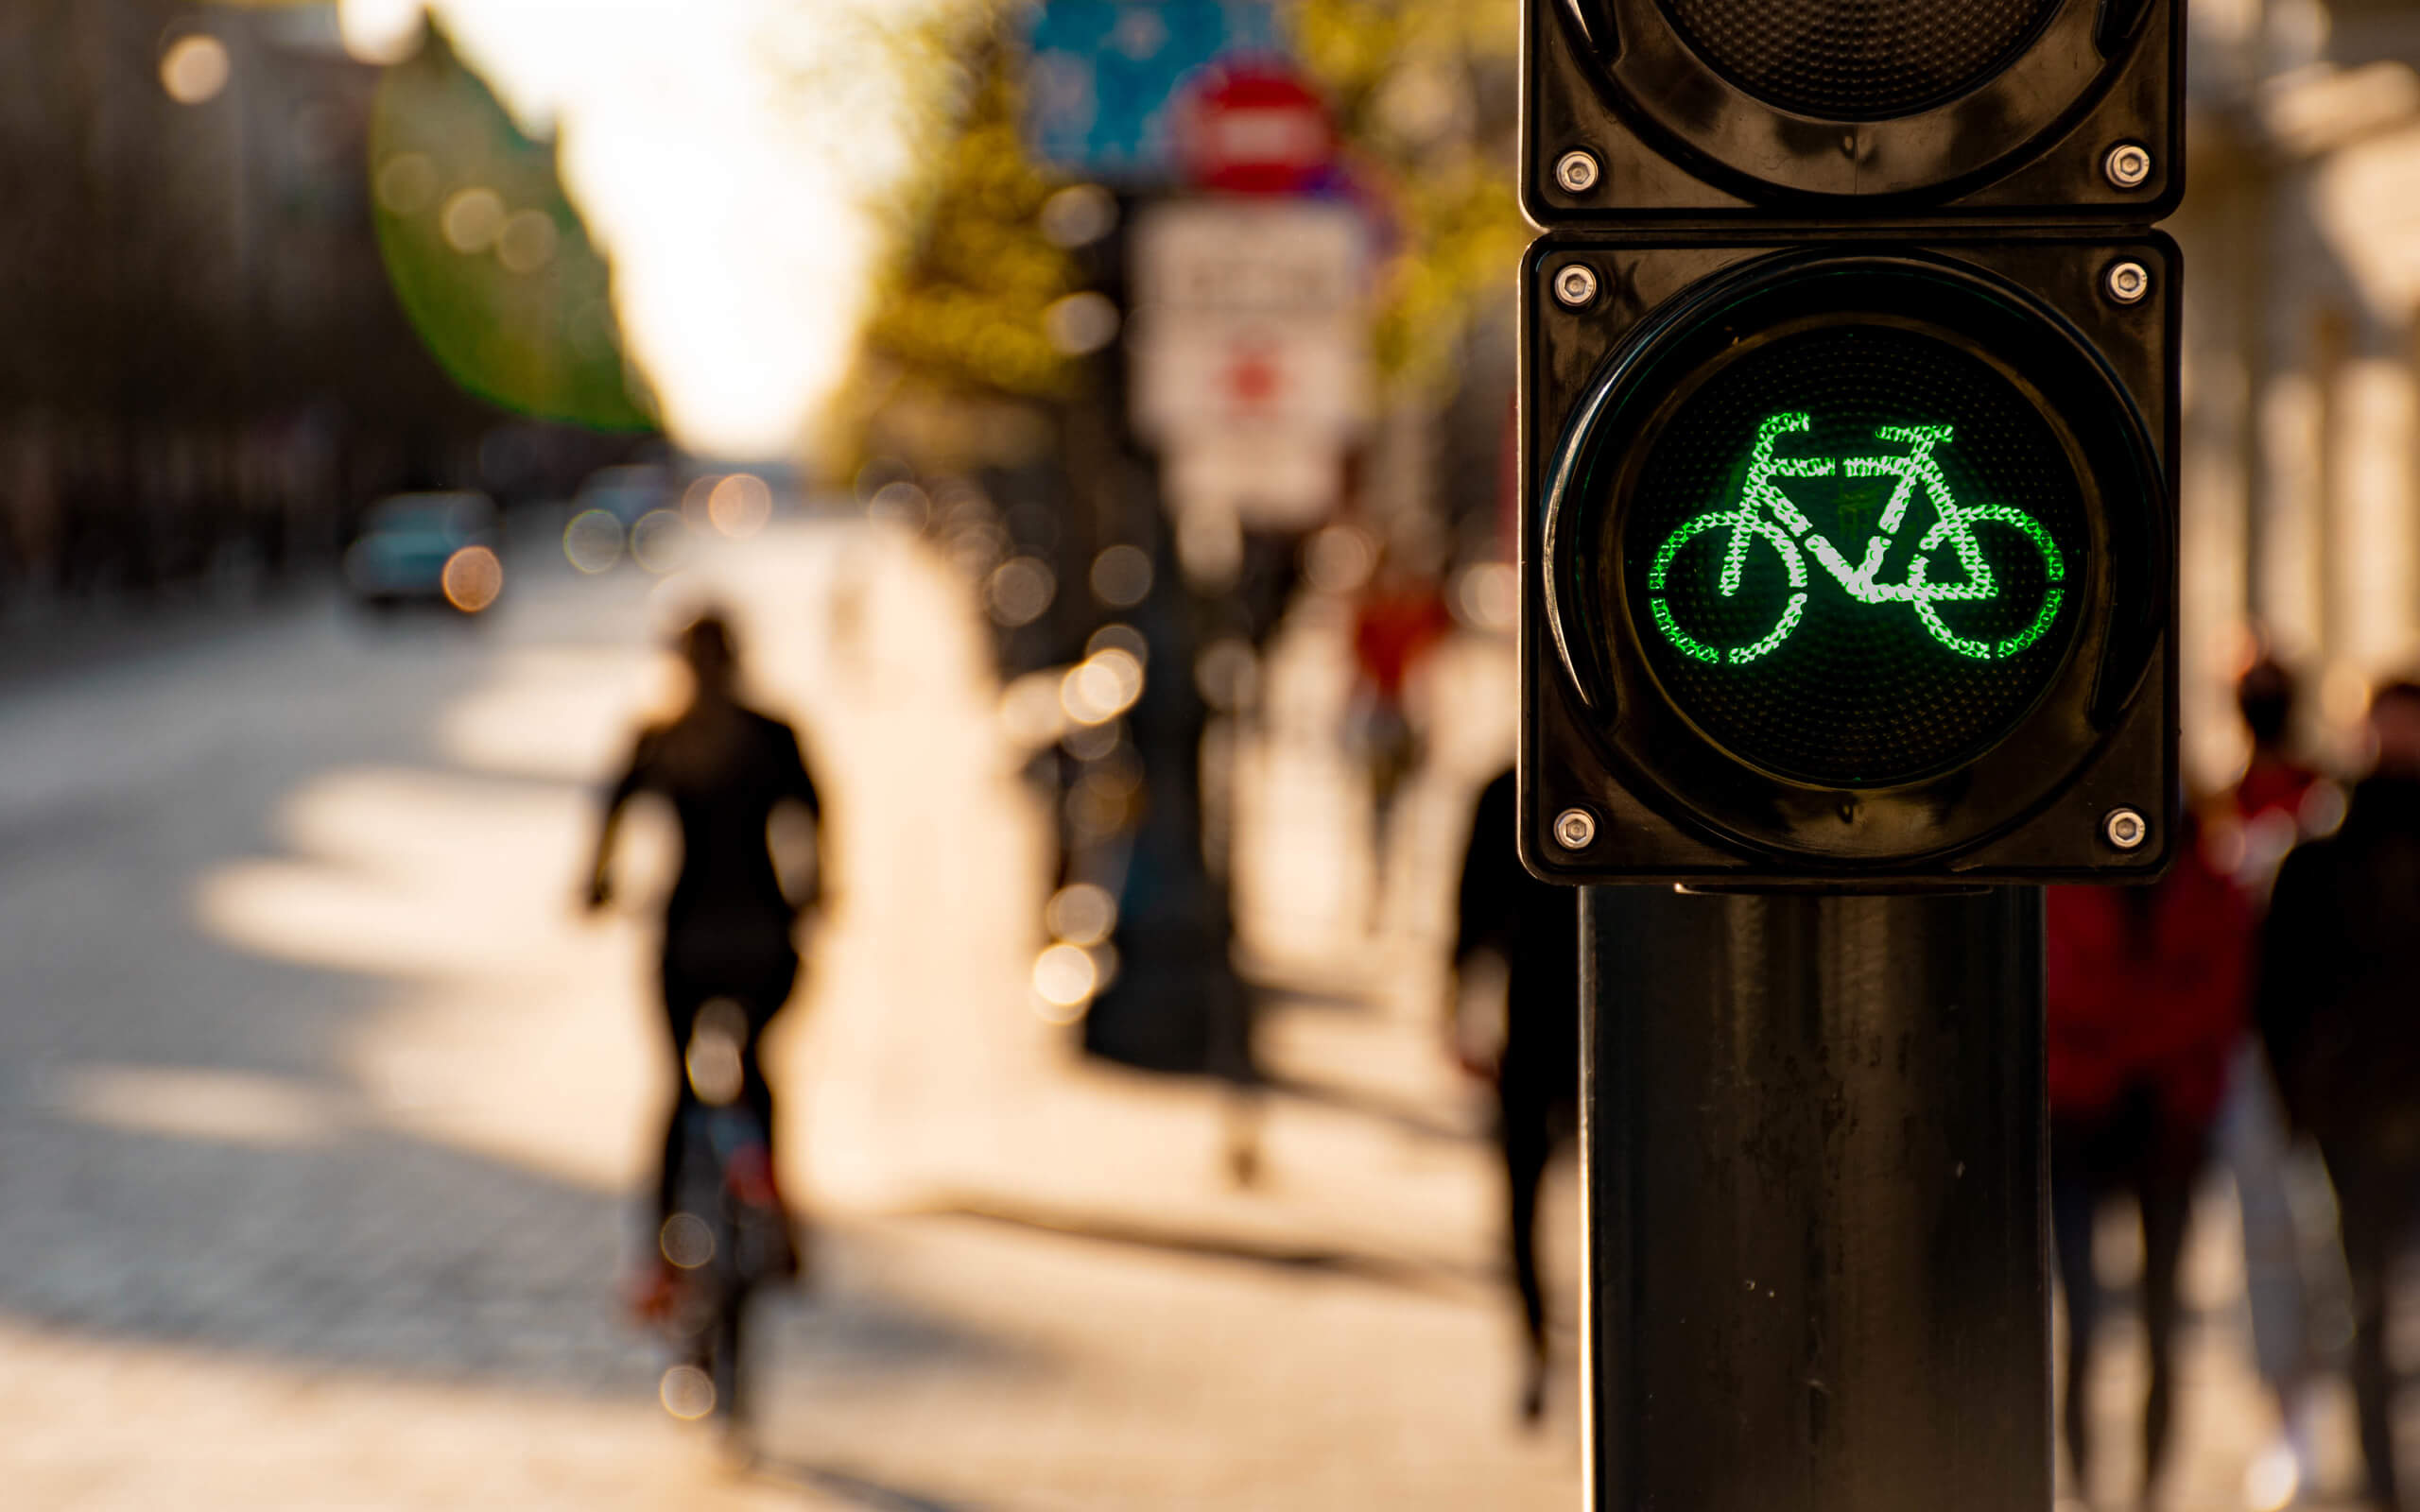 Traffic light showing a green bicycle lit up